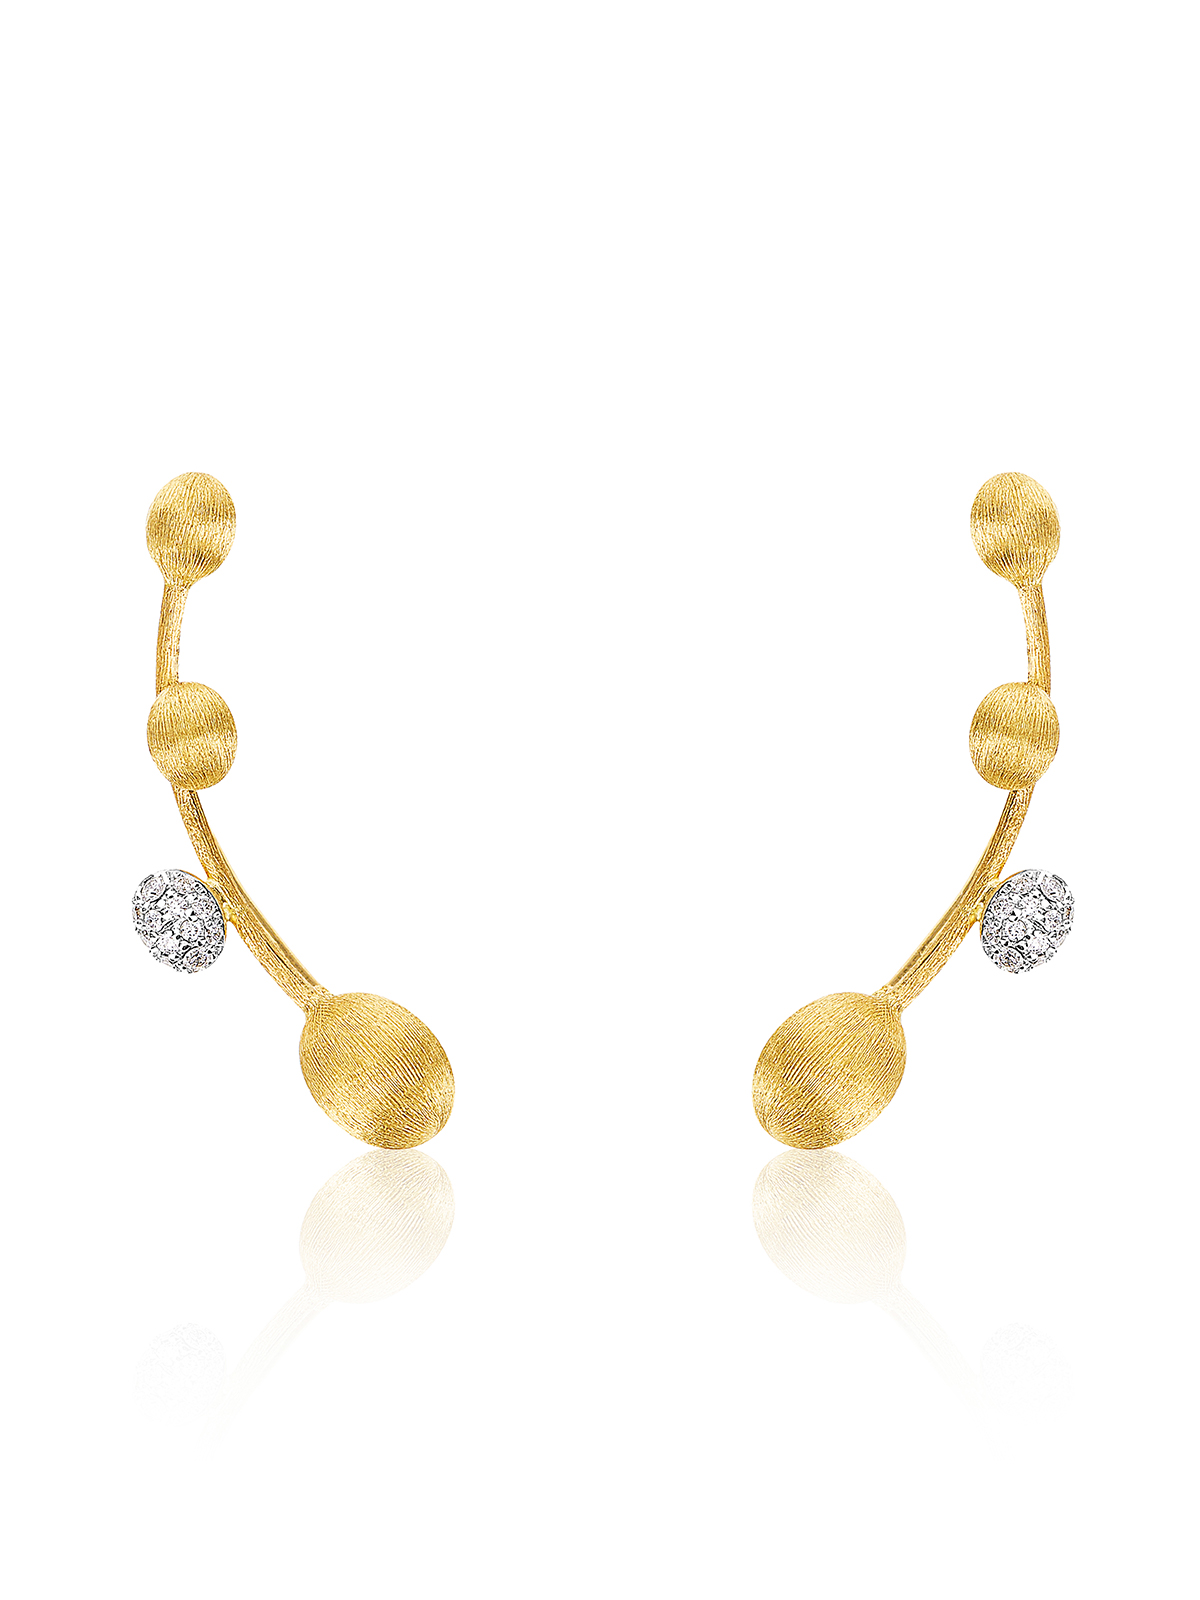 Dancing Elite collection cuff earrings